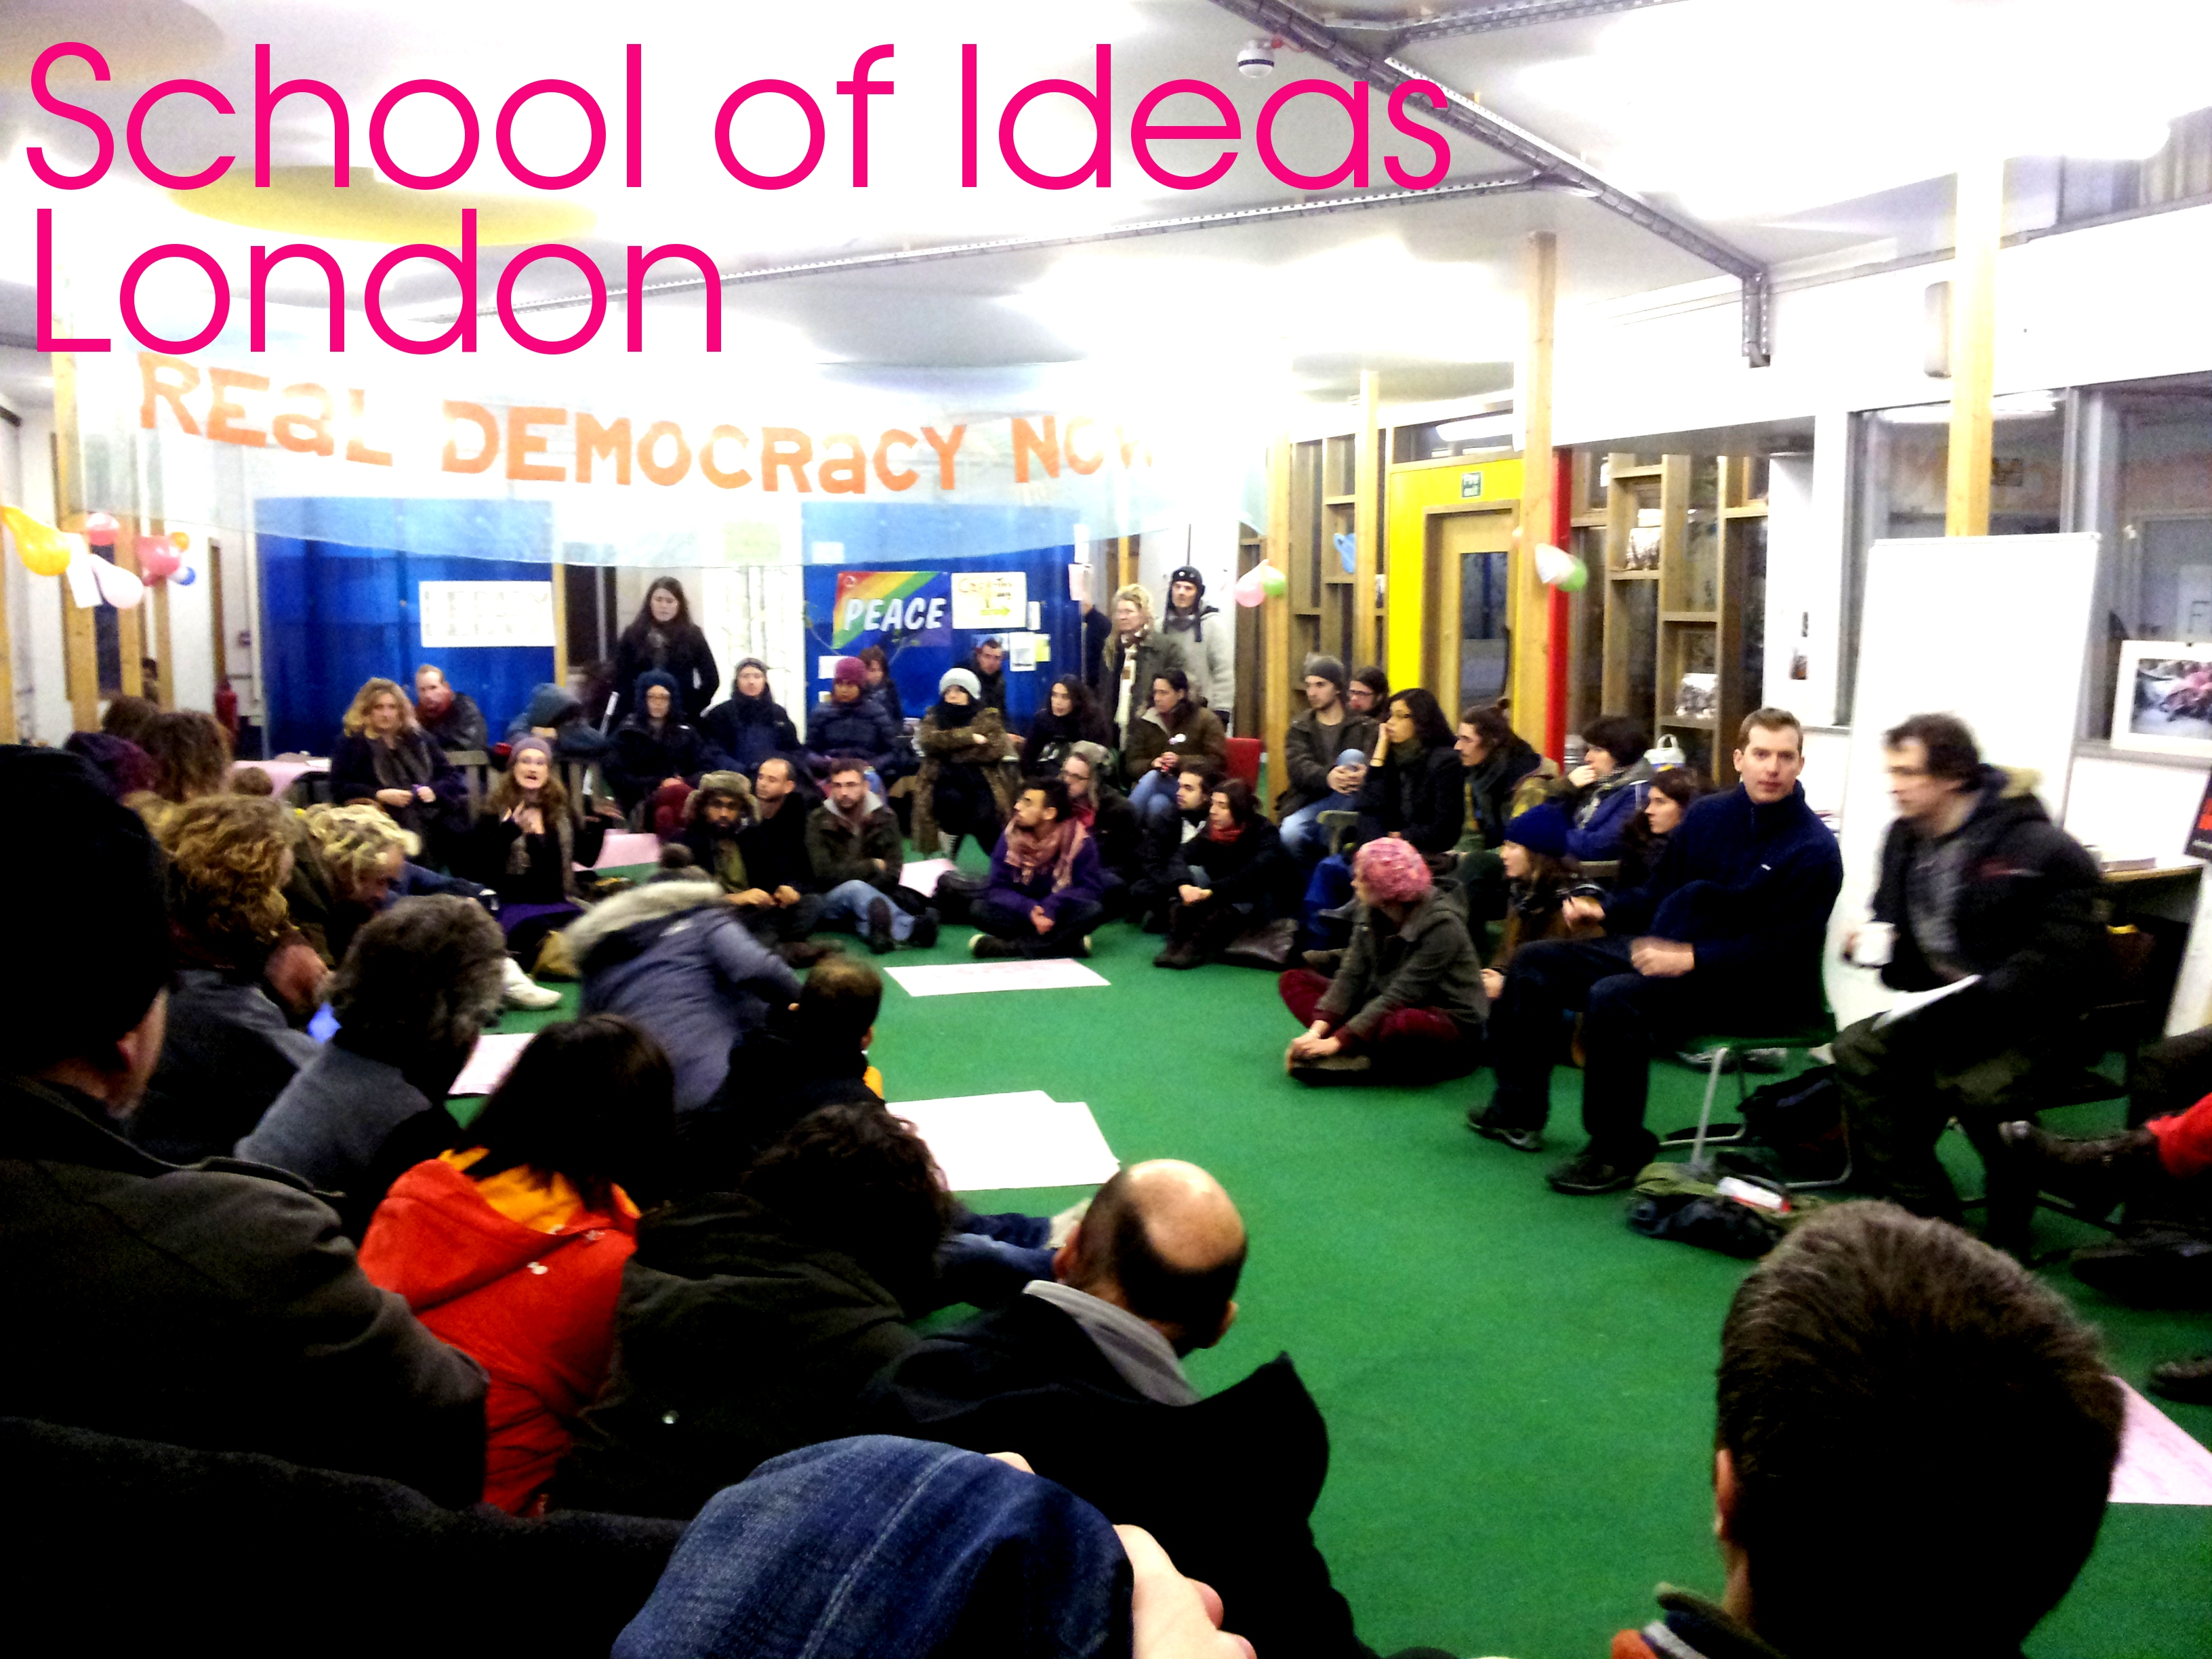 The School of Ideas open to the public for the free sharing of ideas and solutions